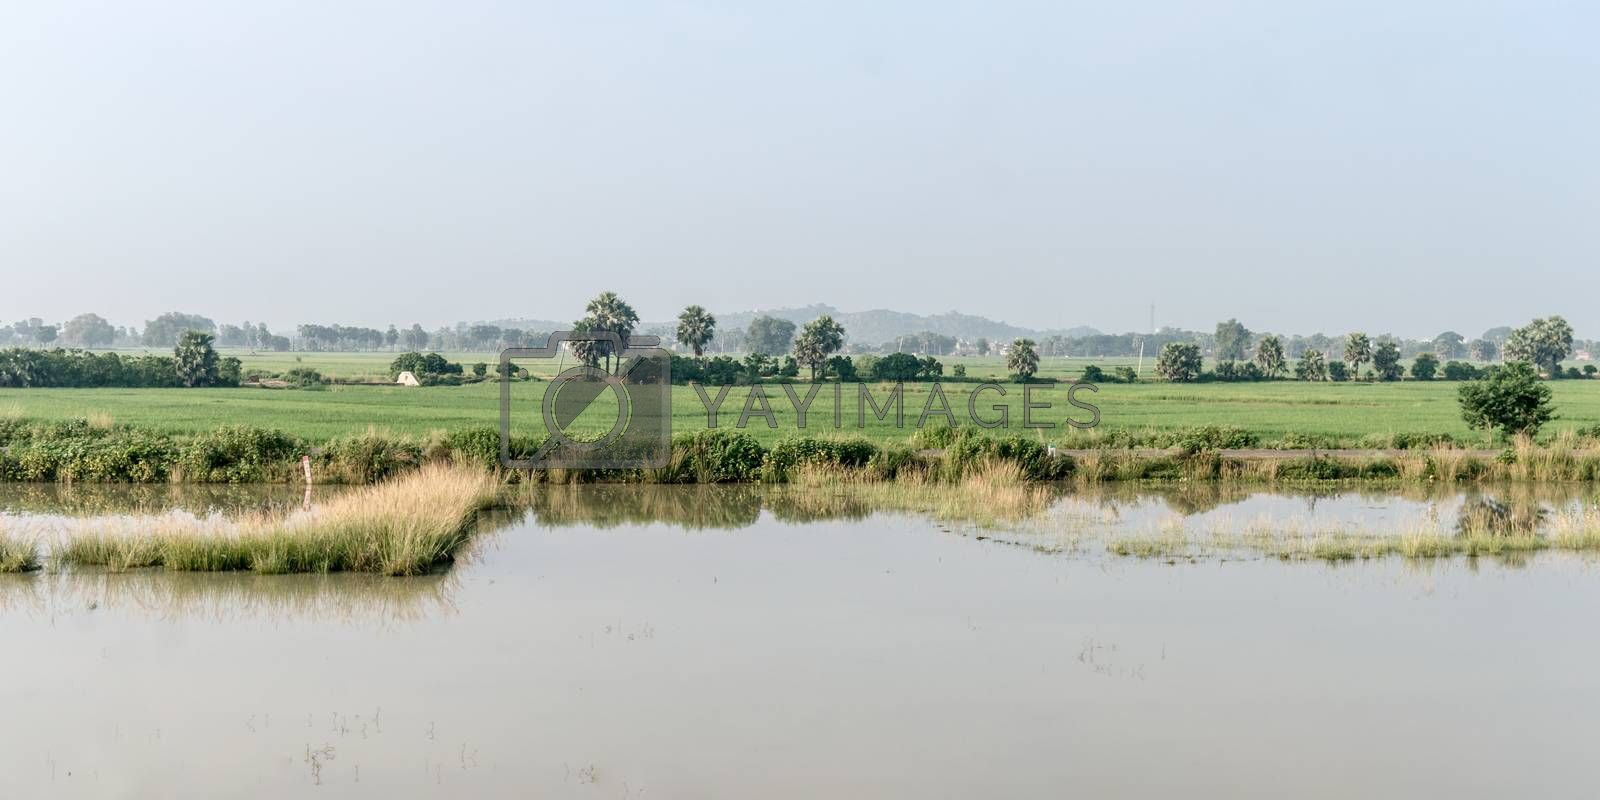 Landscape Scenery of Agriculture field in Agrarian India. A Traditional Rice farm horizon during monsoon. Typical tropical green countryside harvest of Indian agricultural land.